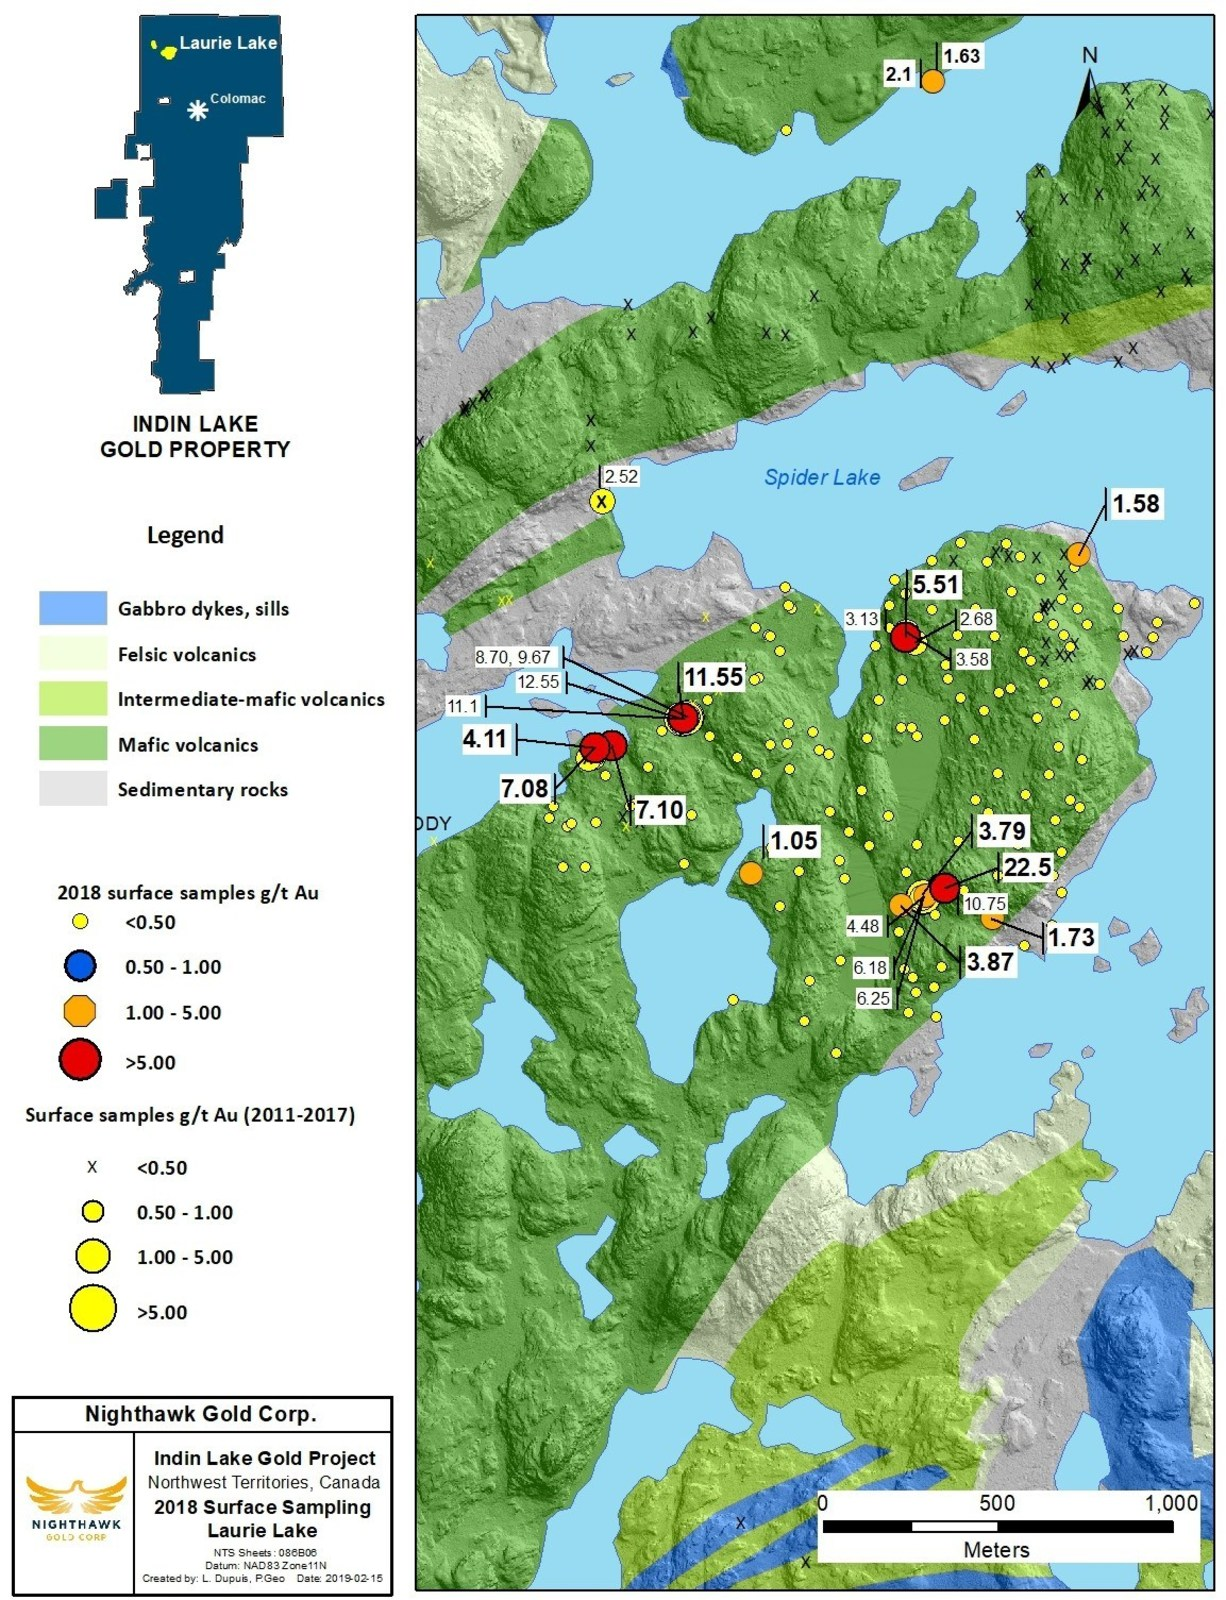 Figure 5. Laurie Lake Location Map and Select Surface Sample Results